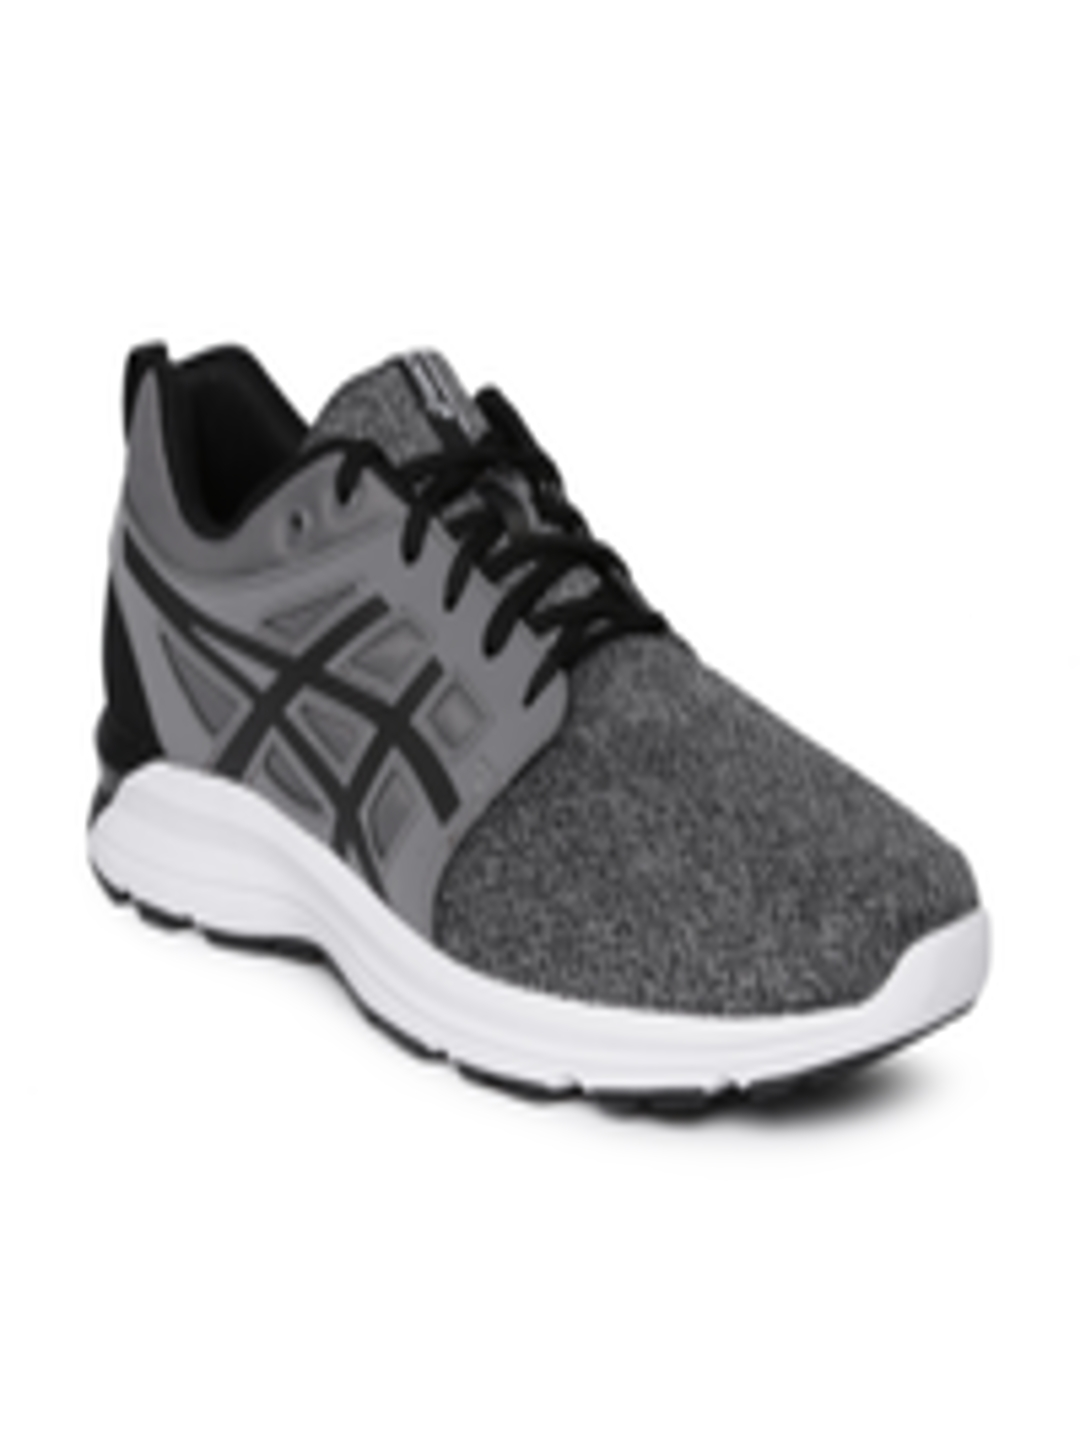 asics 2100 series running scarpa Sale,up to 47% Discounts